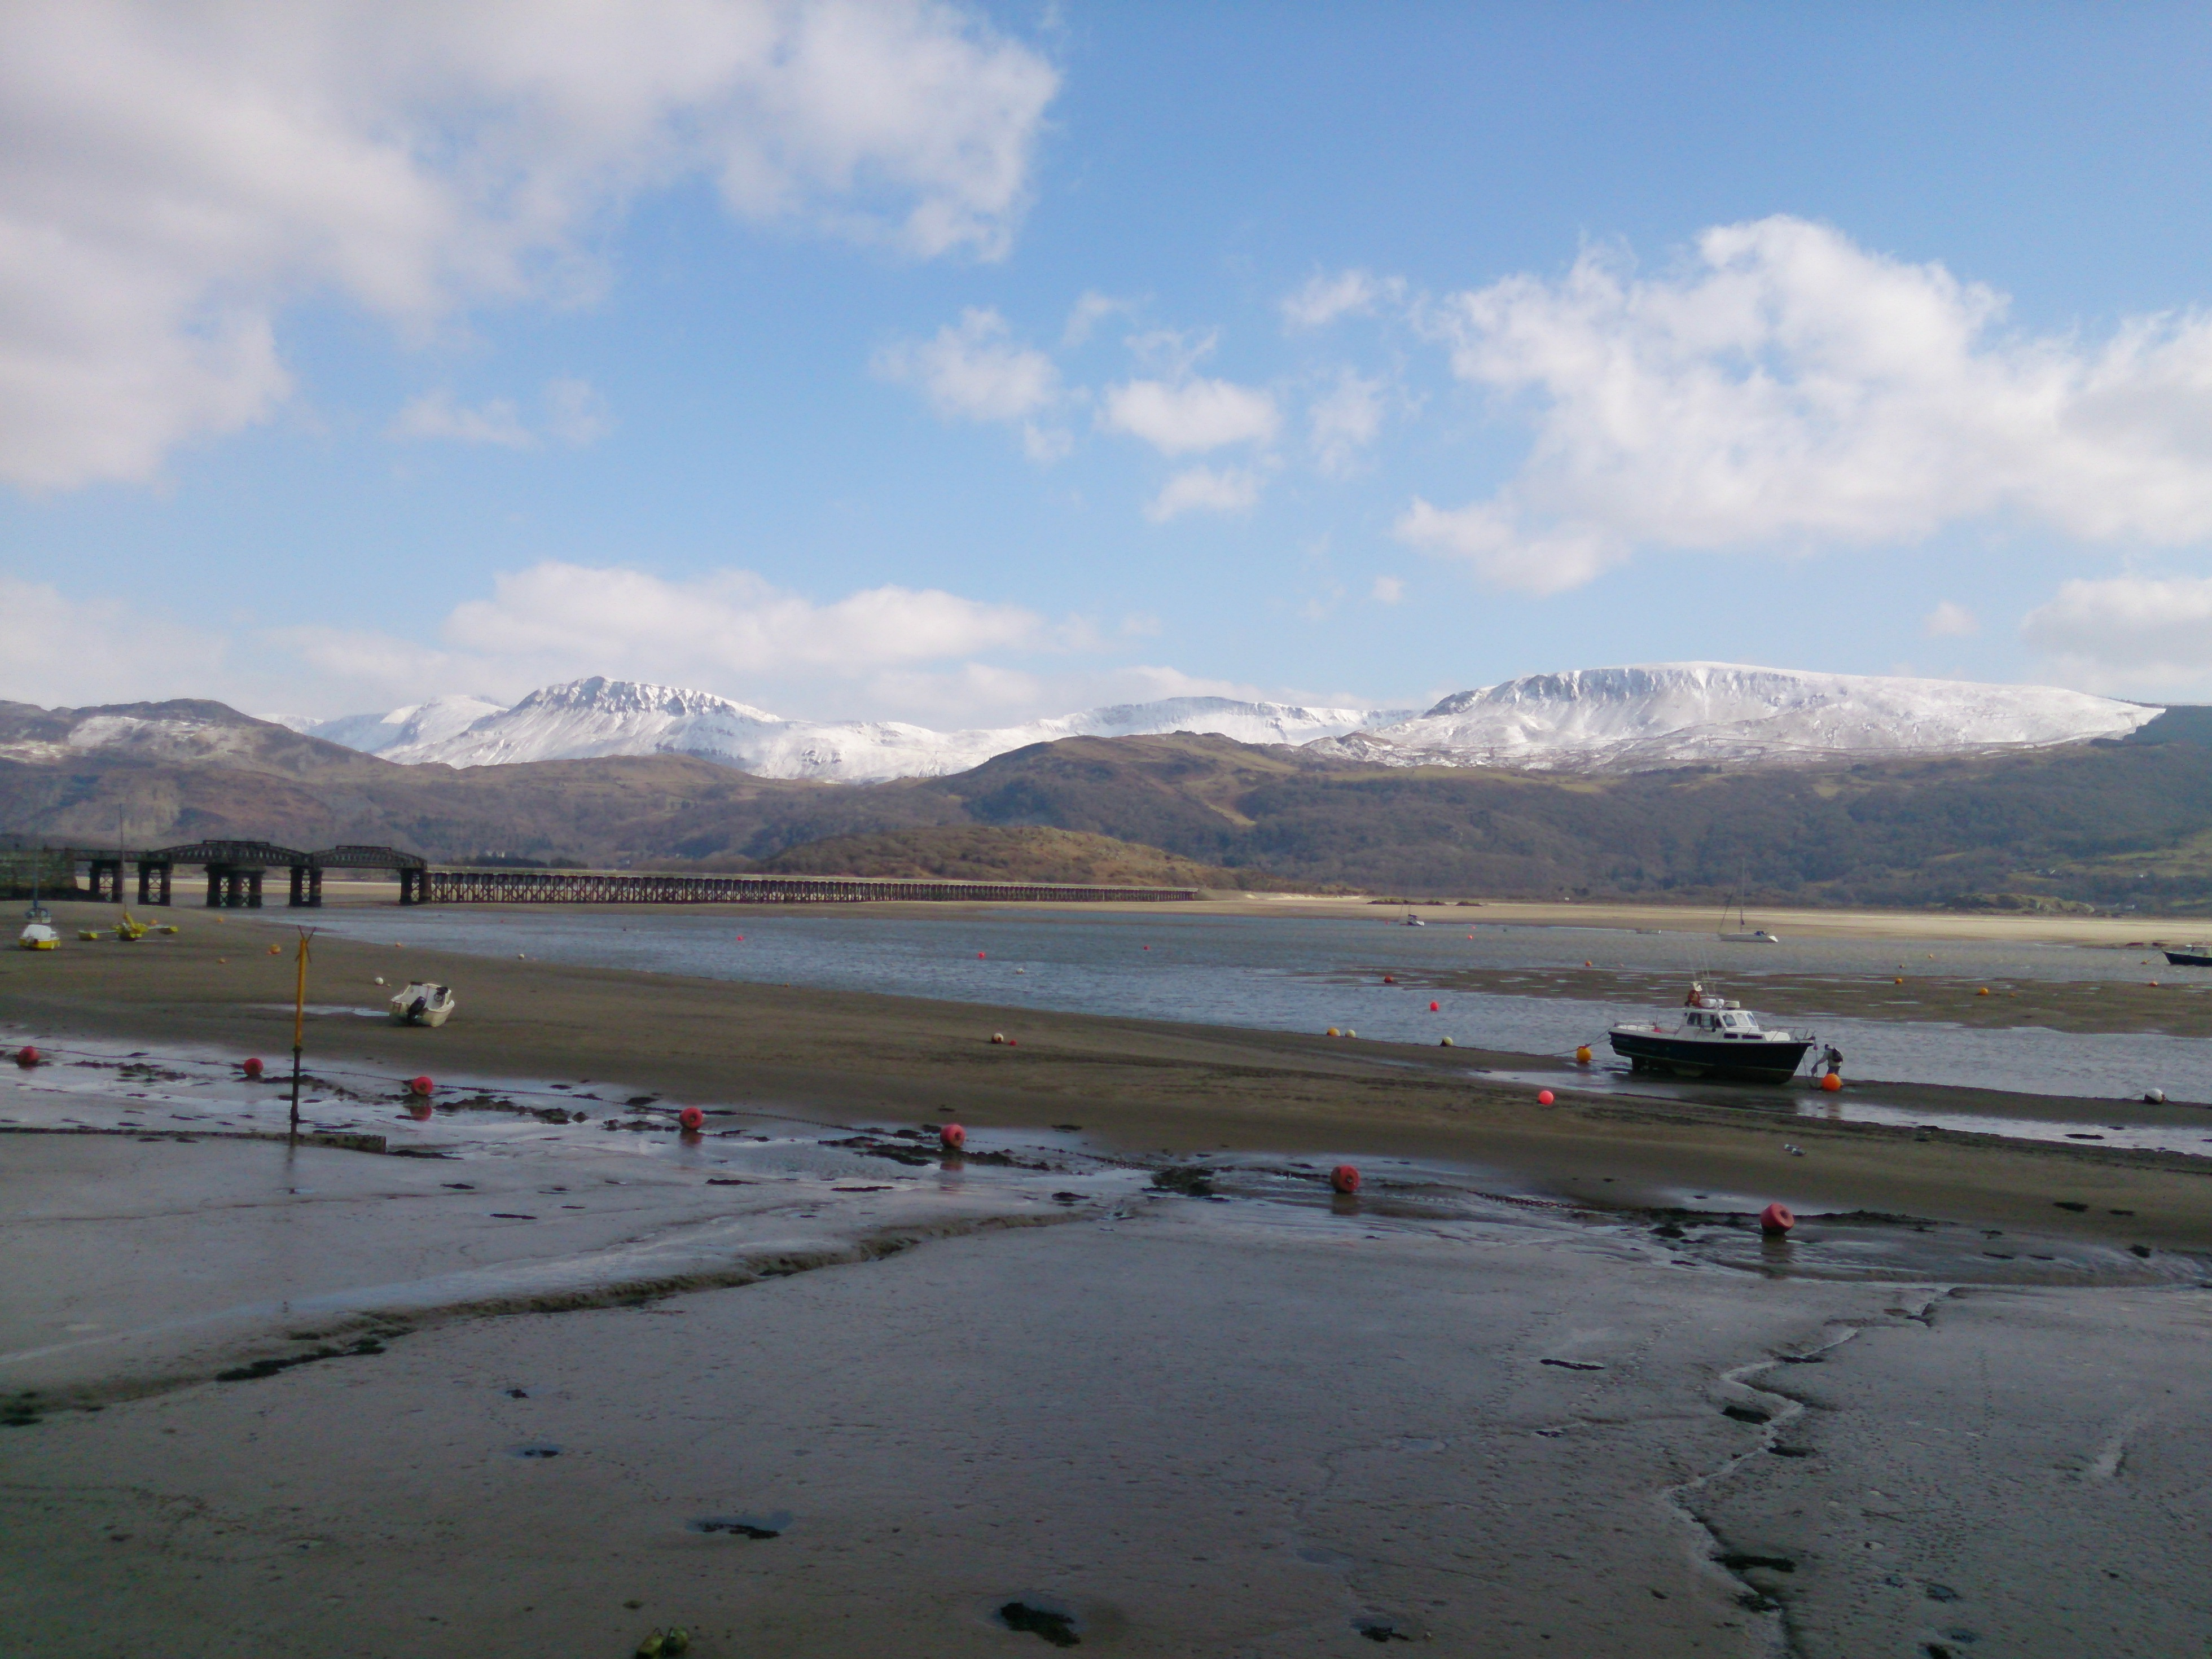 Barmouth harbour at low tide showing the snow capped mountains.